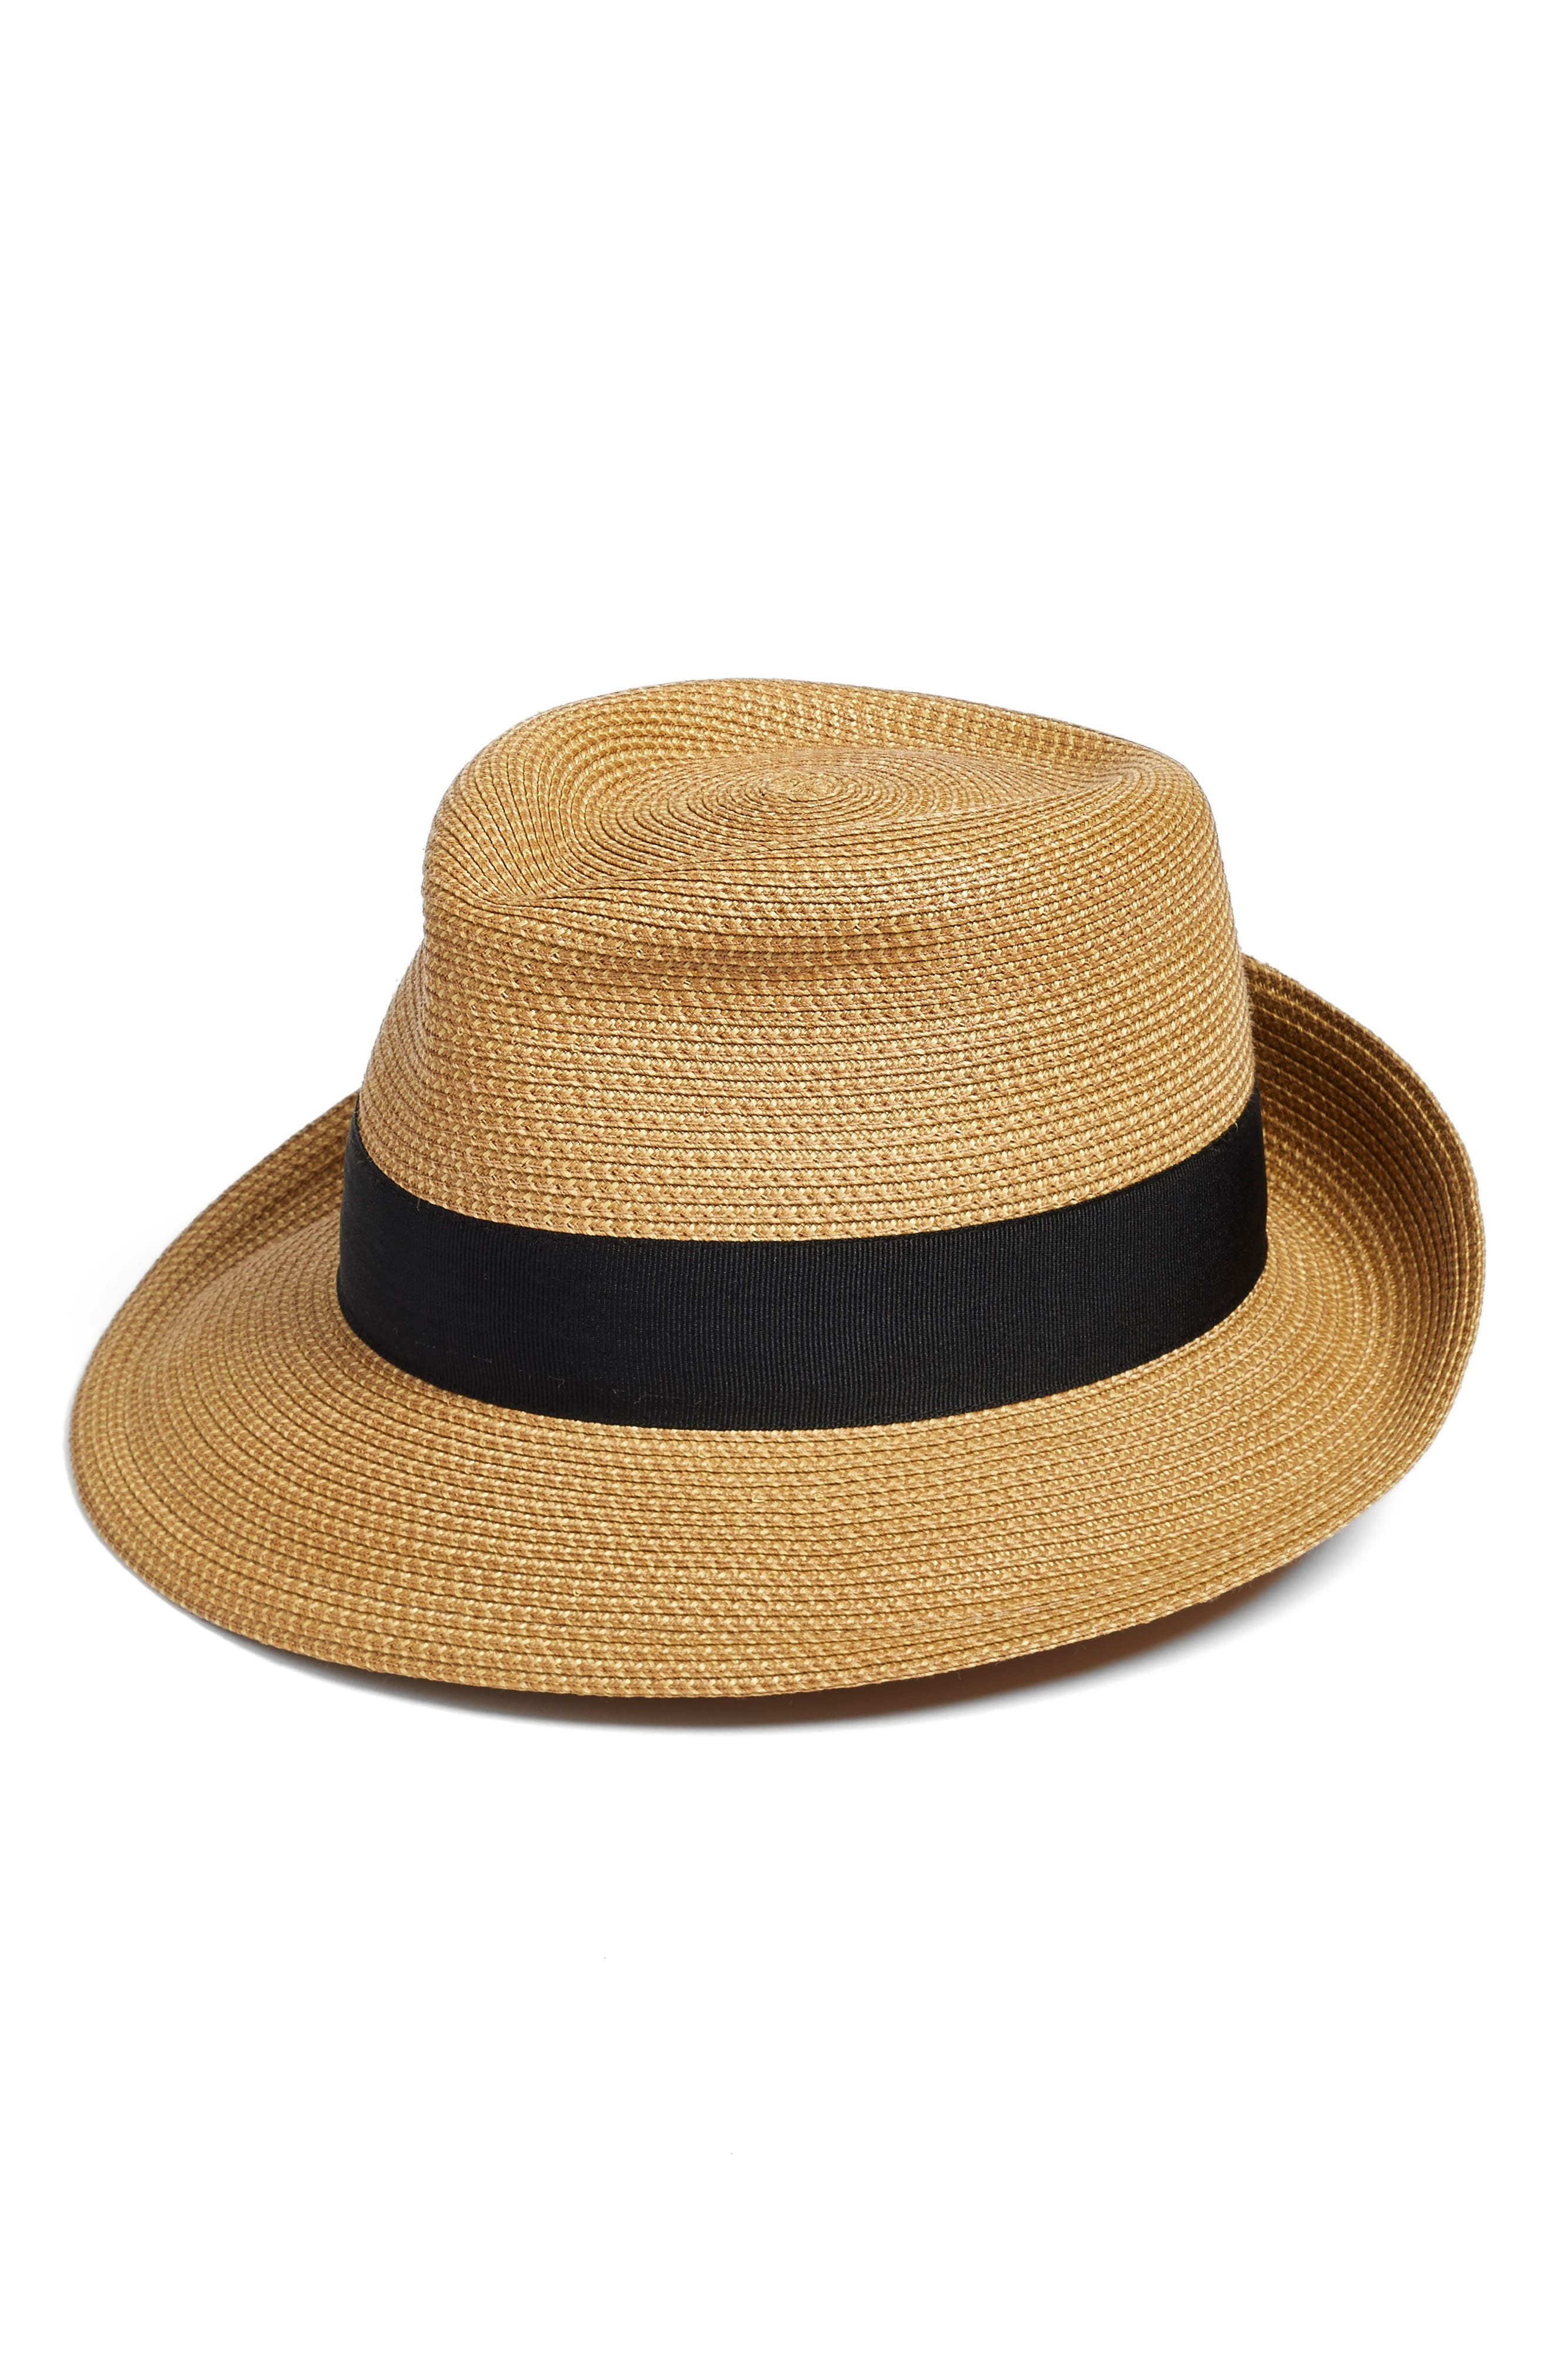 'Classic' Squishee<sup>®</sup> Packable Fedora Sun Hat,                             Alternate thumbnail 3, color,                             NATURAL/ BLACK